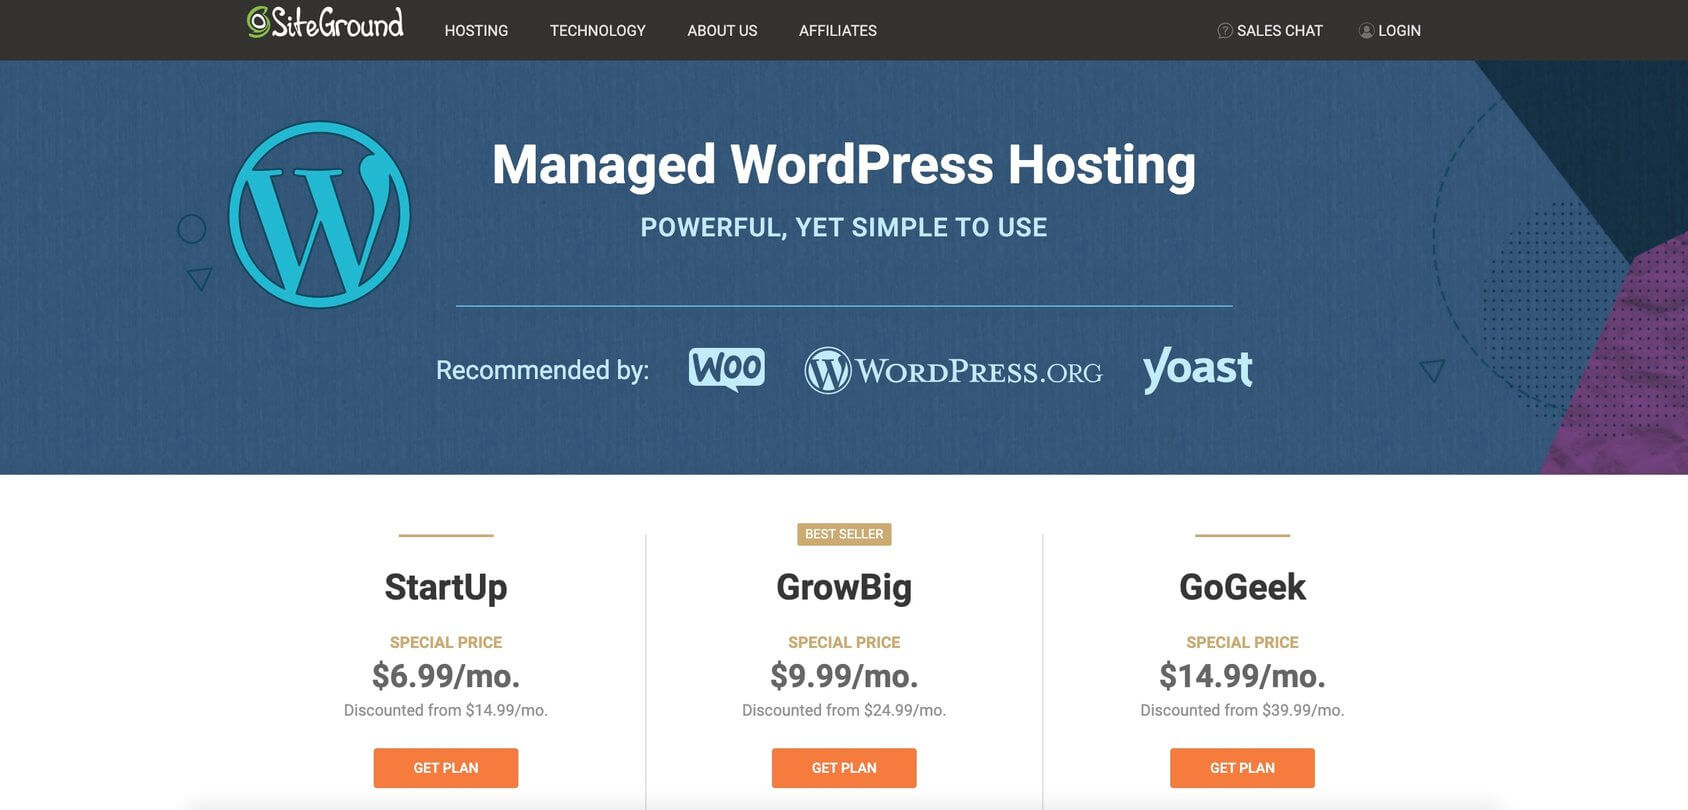 Siteground Managed WordPress